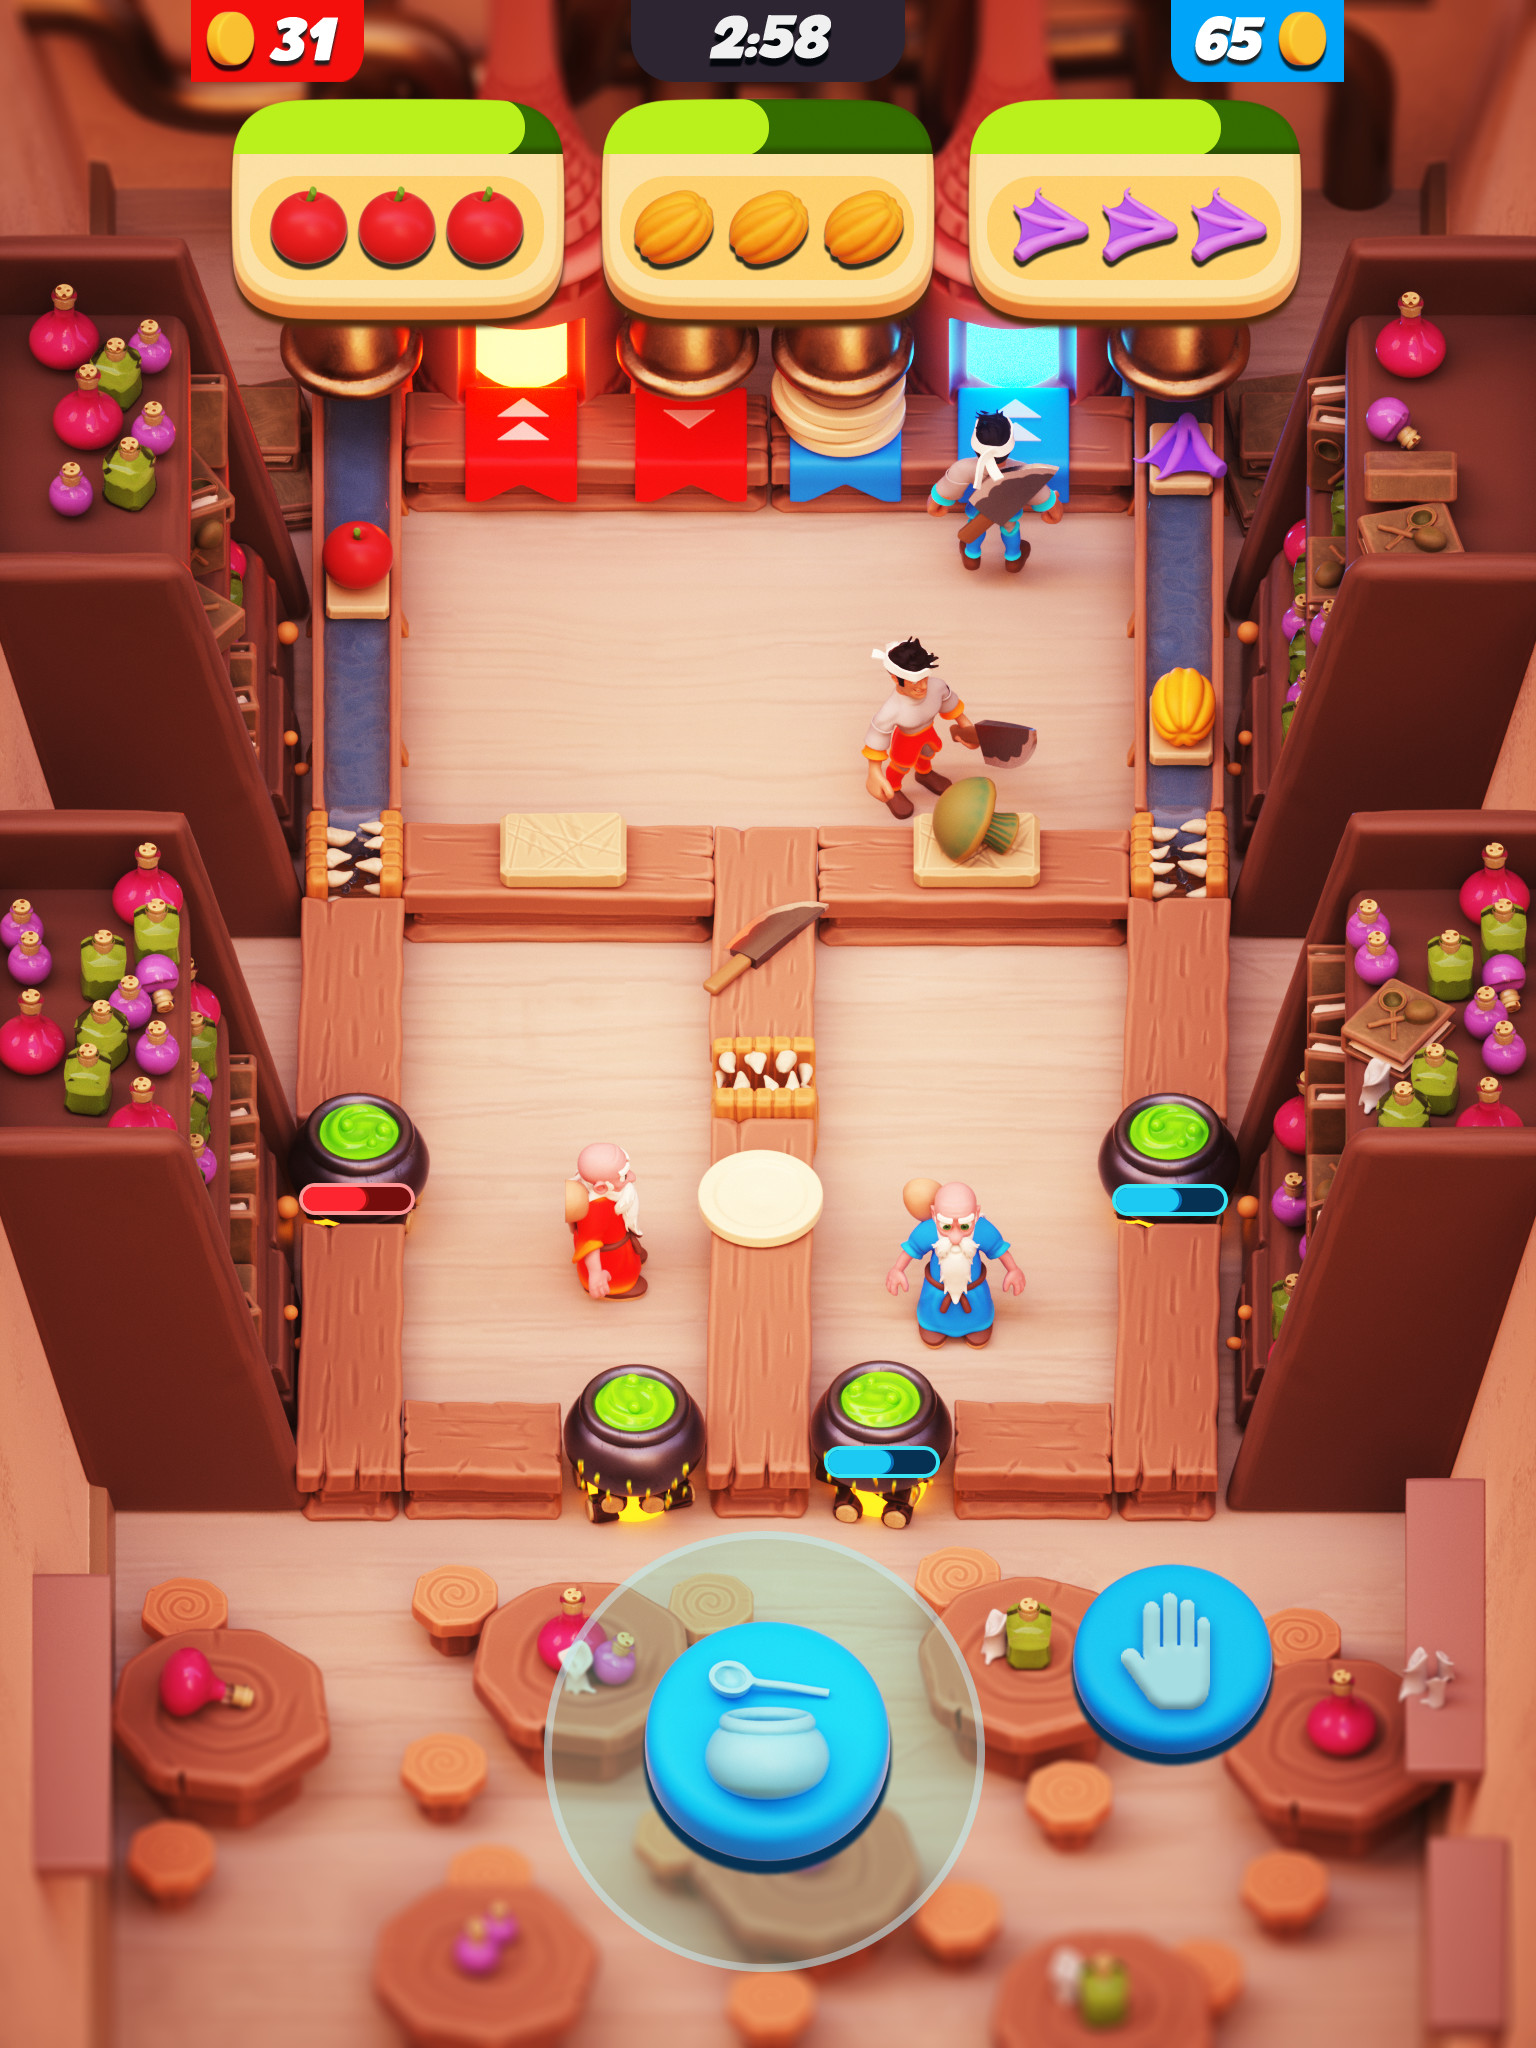 Art Direction - Fantasy Cooking Game